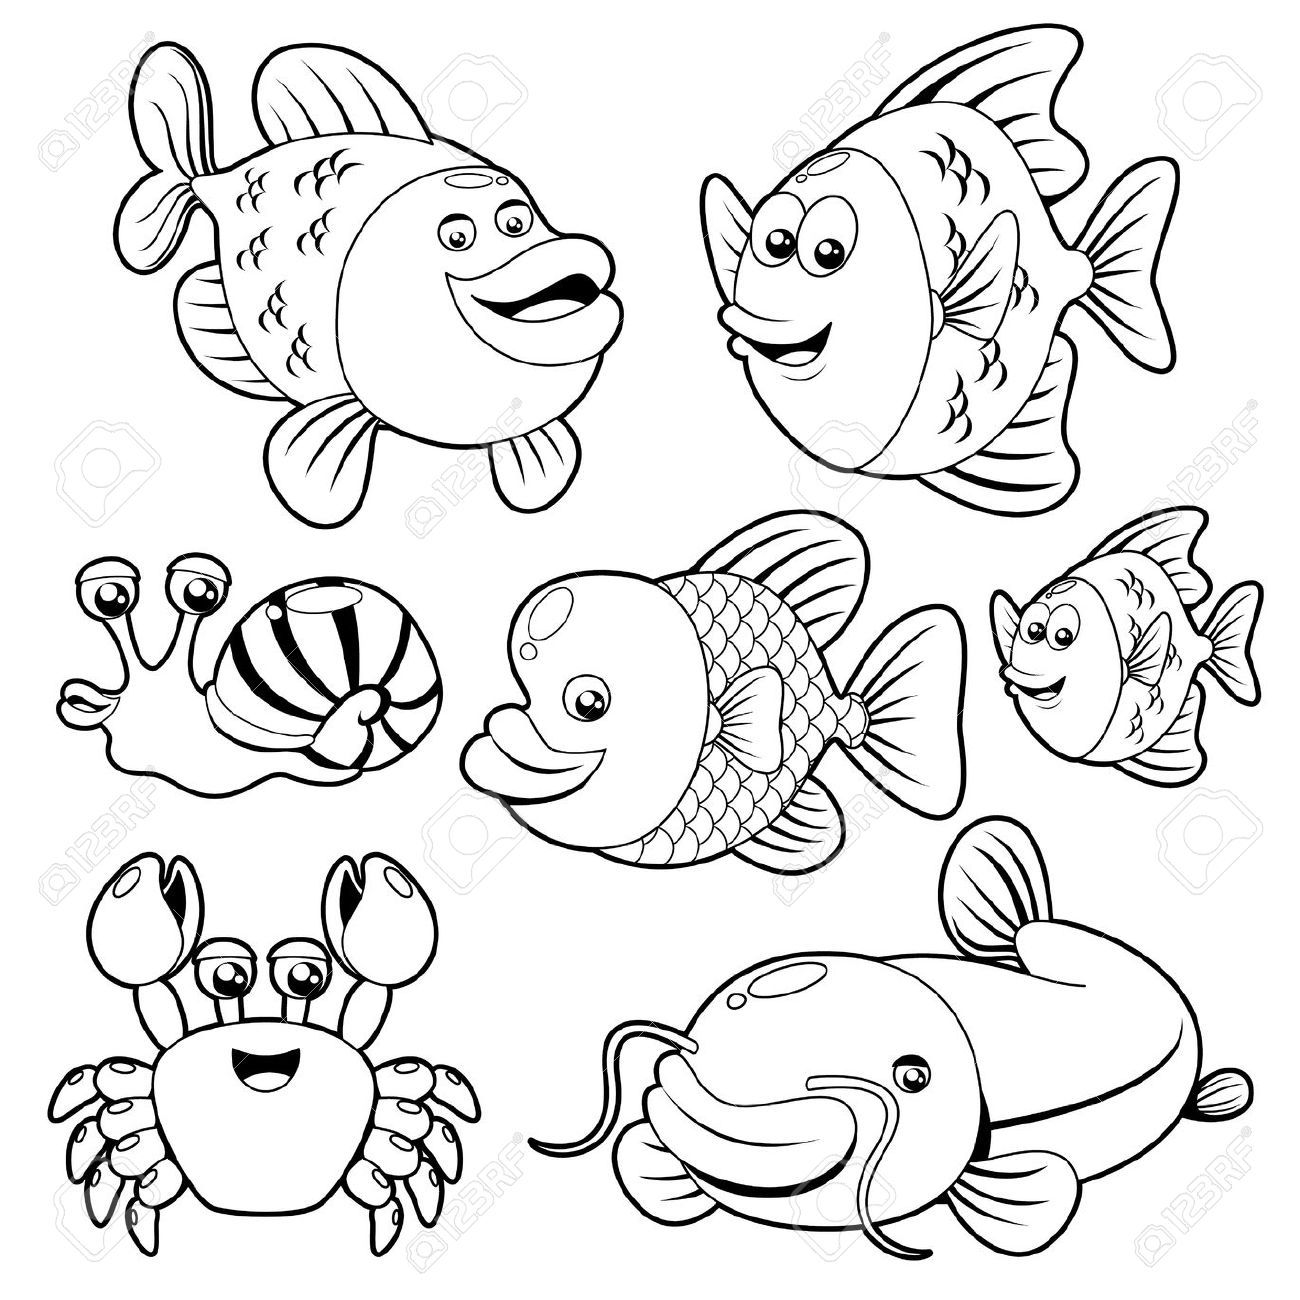 Ocean Animals Clipart Black And White Fishs Black And White Animal Clipart Black And White Cute Fish